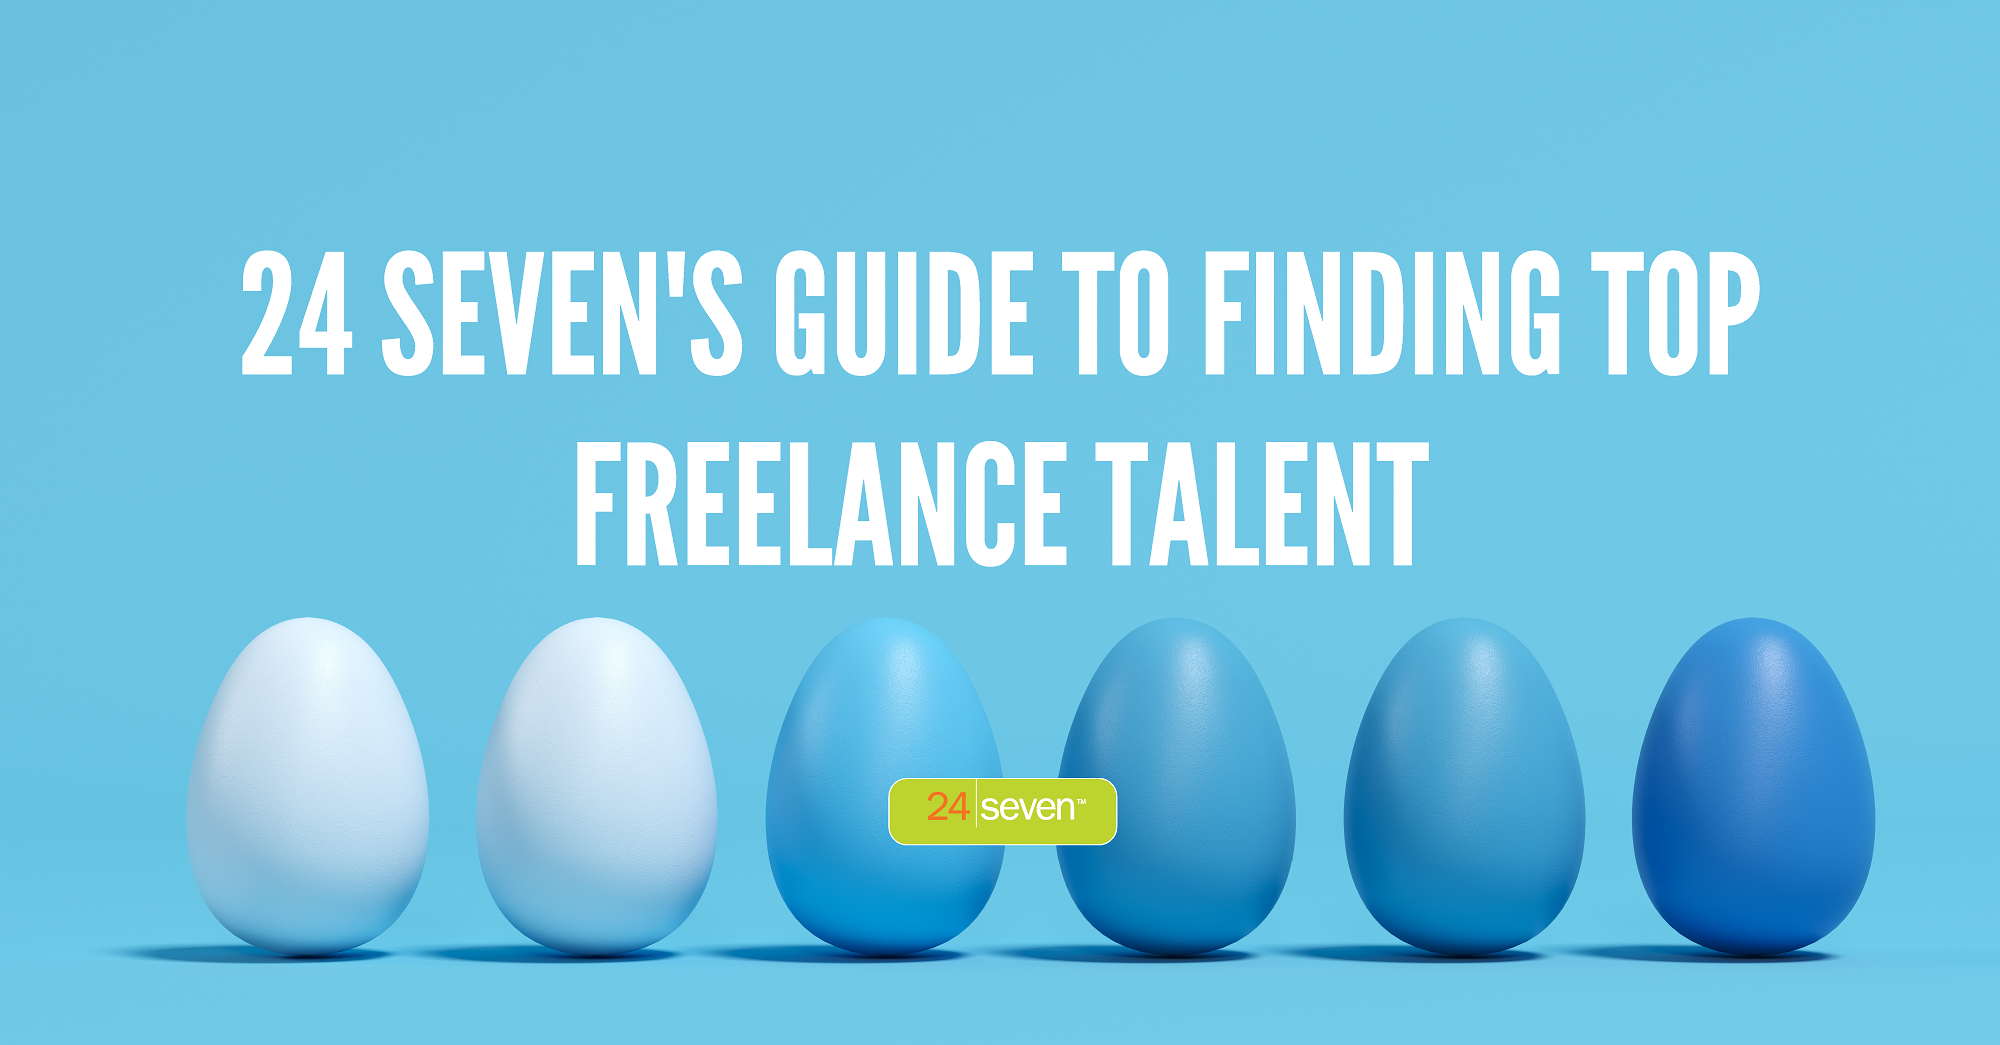 24 Sevens Guide To Finding Top Freelance Talent